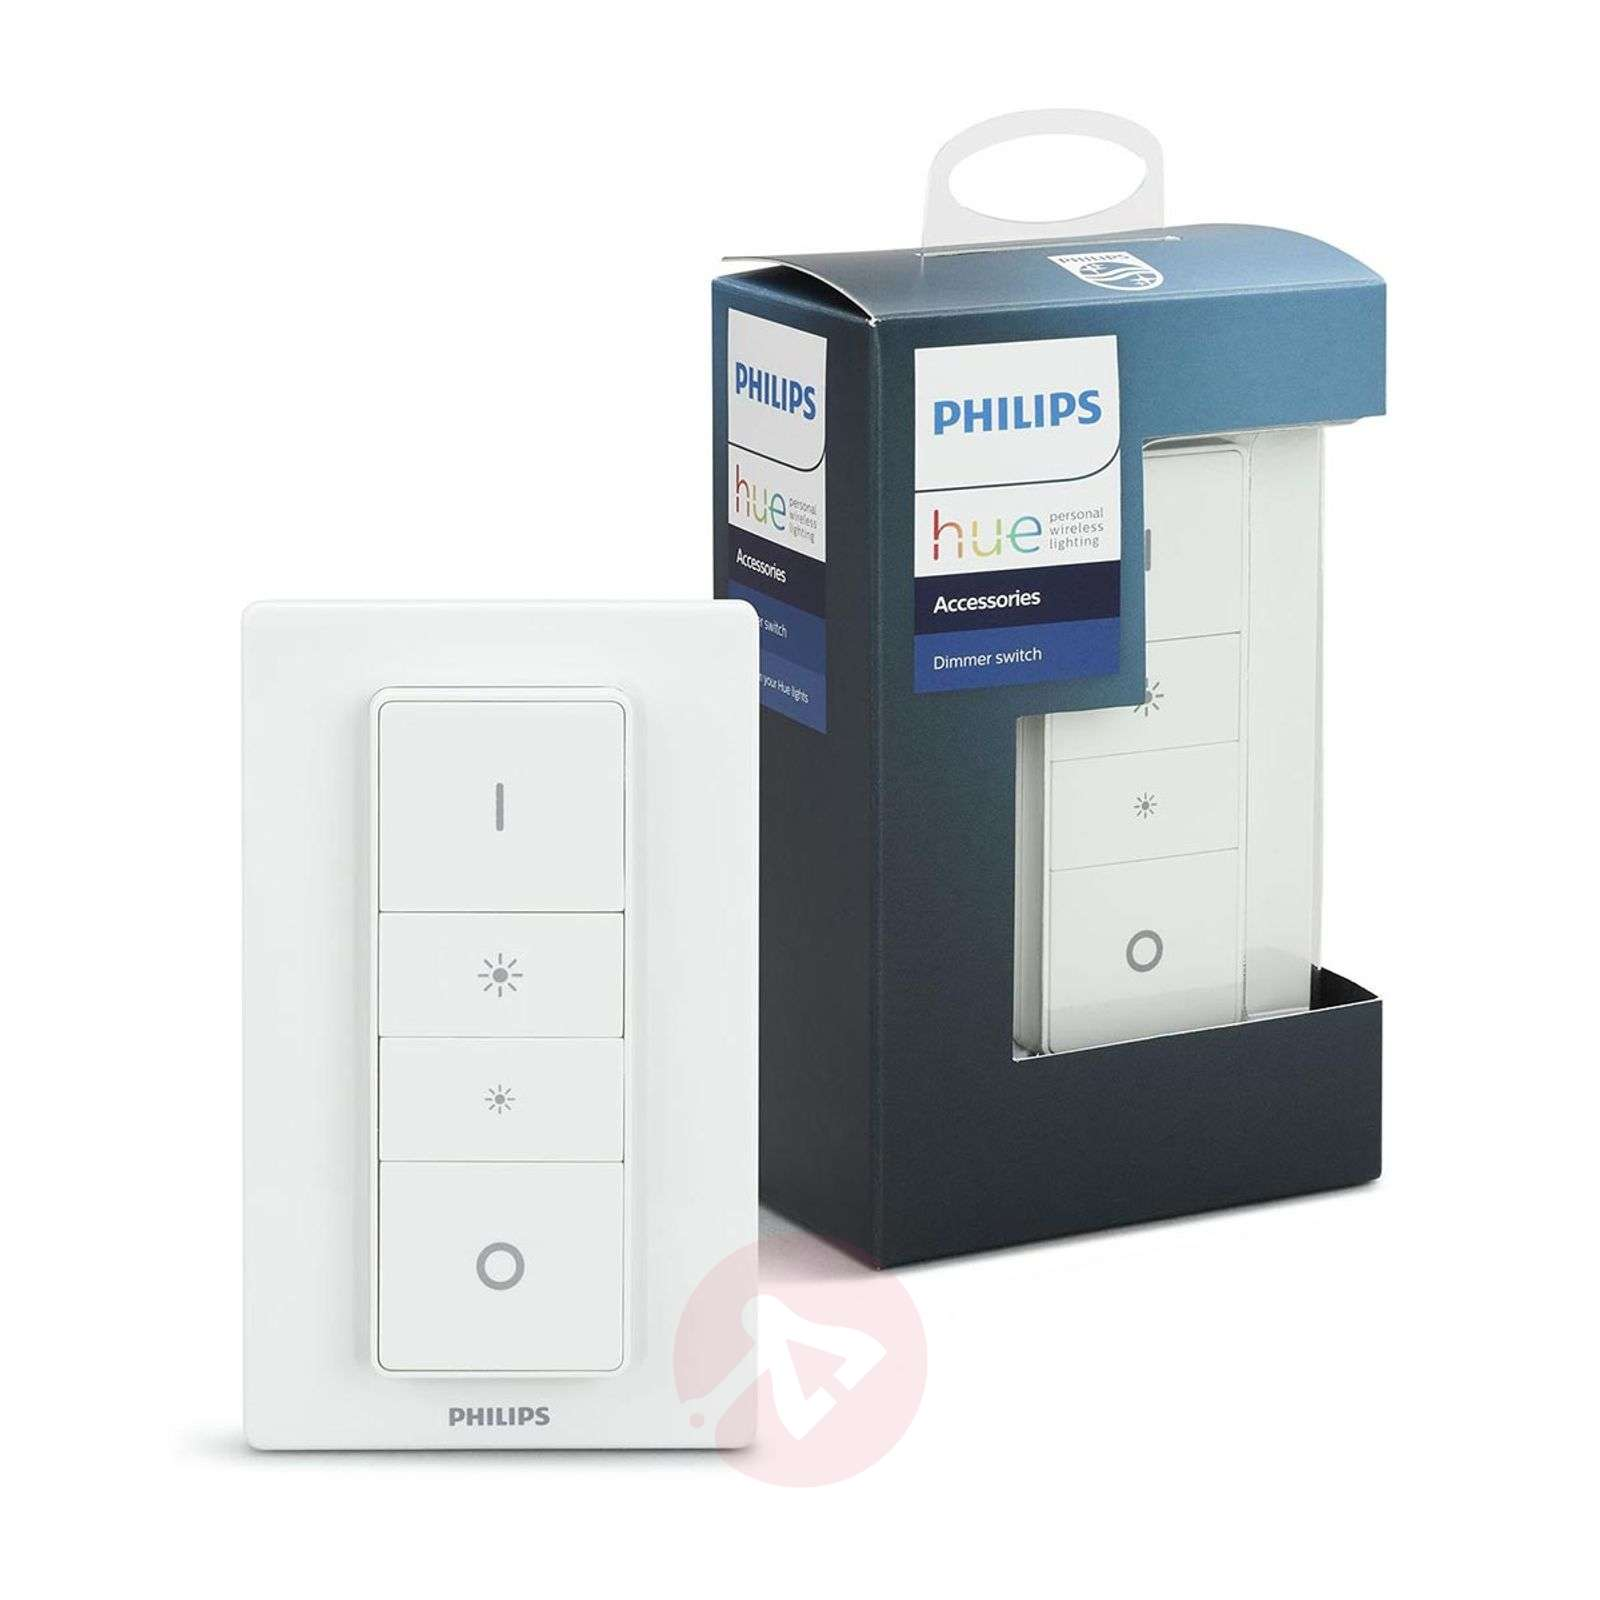 Philips Hue dimmer wireless-7532030-01